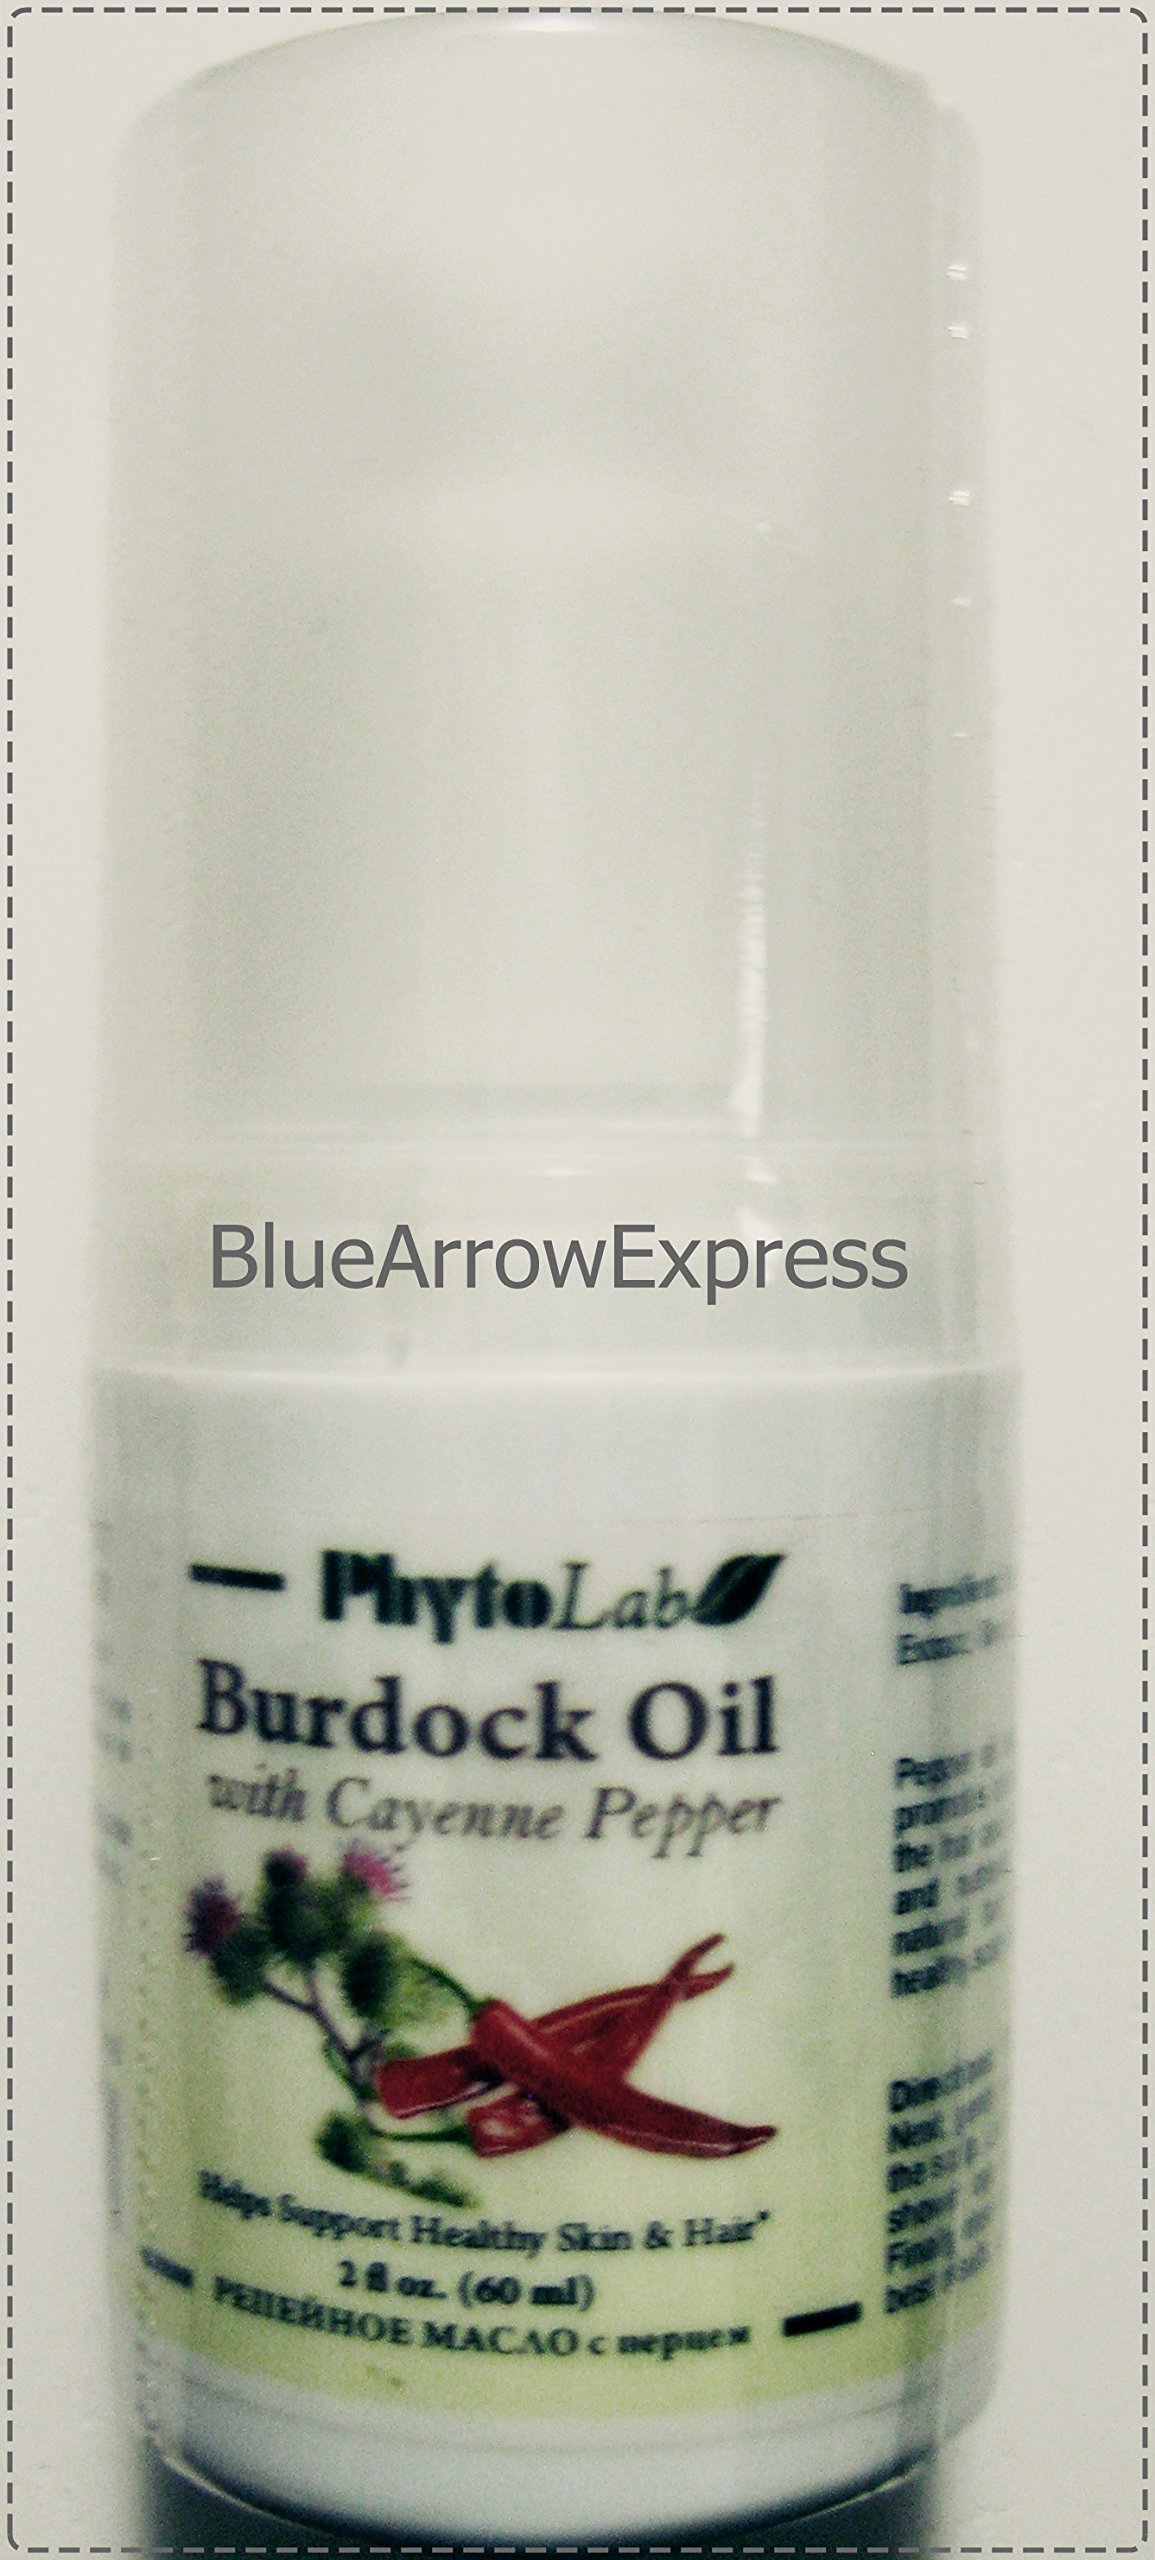 BlueArrowExpress™ Burdock Oil with Cayenne Pepper for Healthy Scalp and Hair 2 fl oz/60 ml